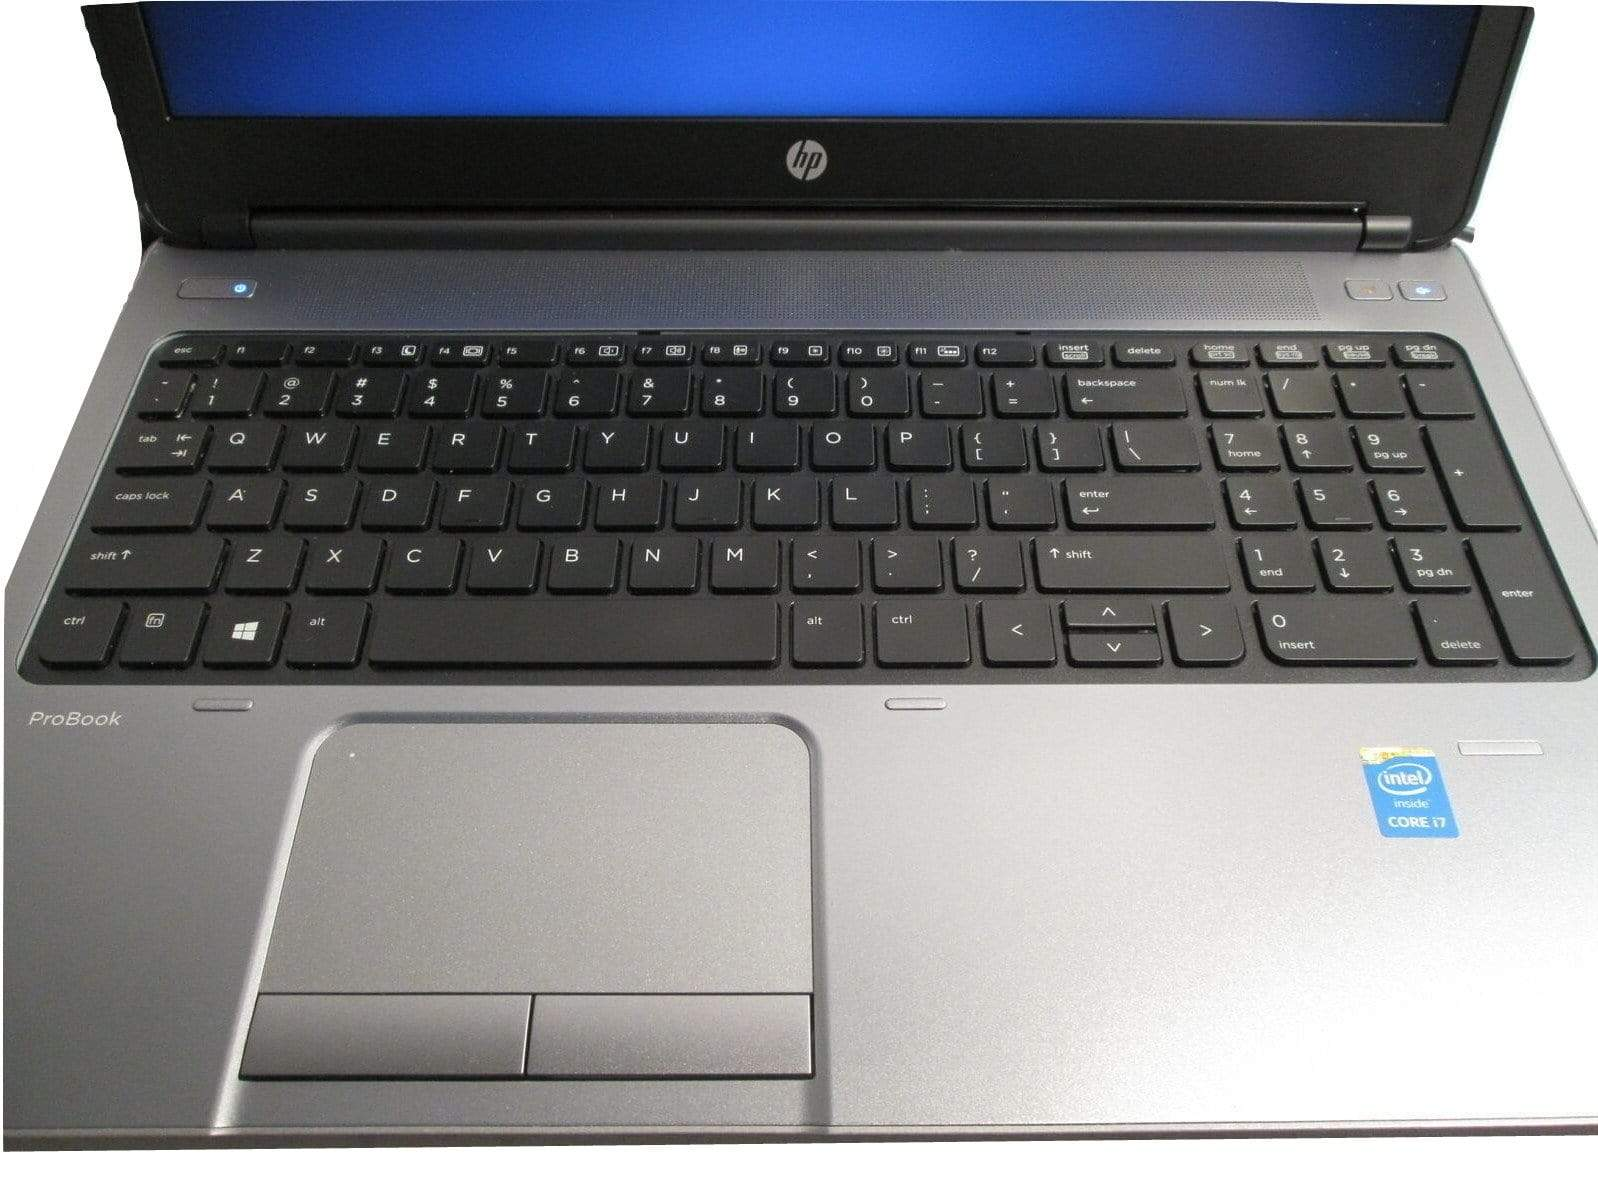 HP ProBook 650 G1 Laptop- 4th Gen i5 CPU, 8GB-16GB RAM, HD